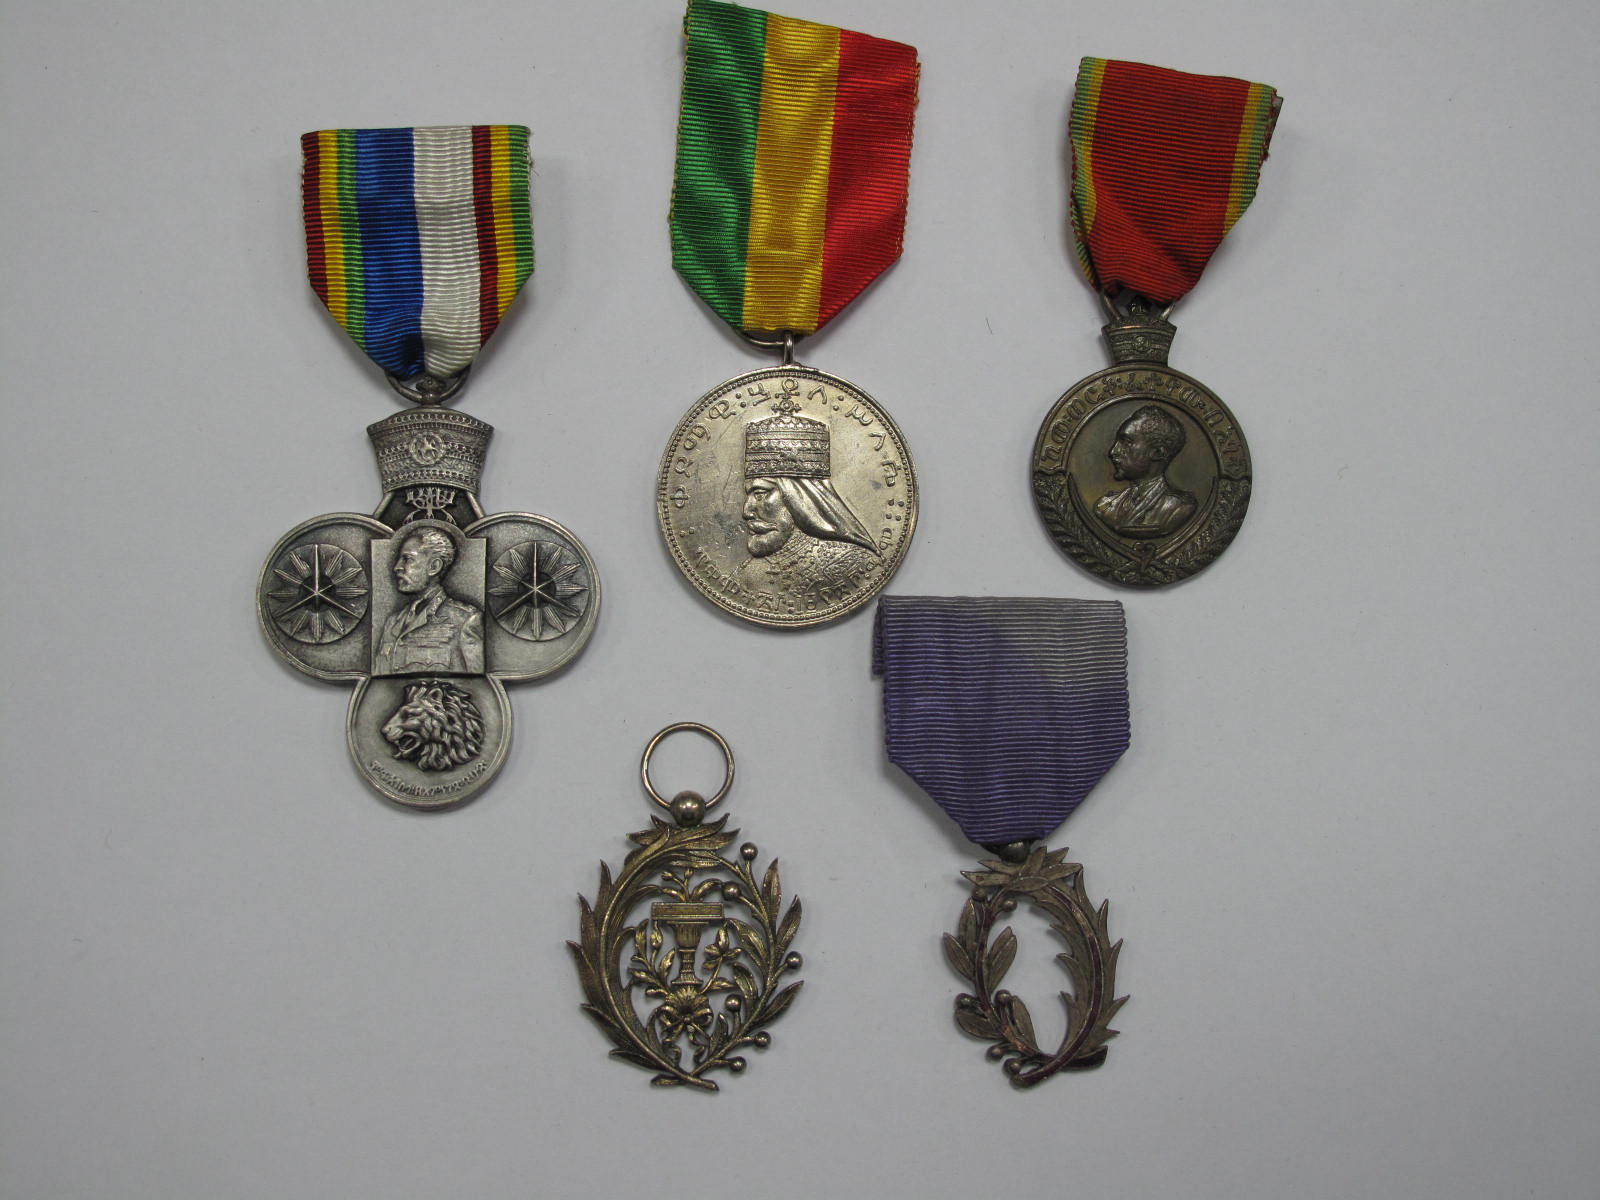 Lot 248 - Five Medals and Orders of the World, including Korean War Medal, Ethiopia Haile Selassie Jubilee